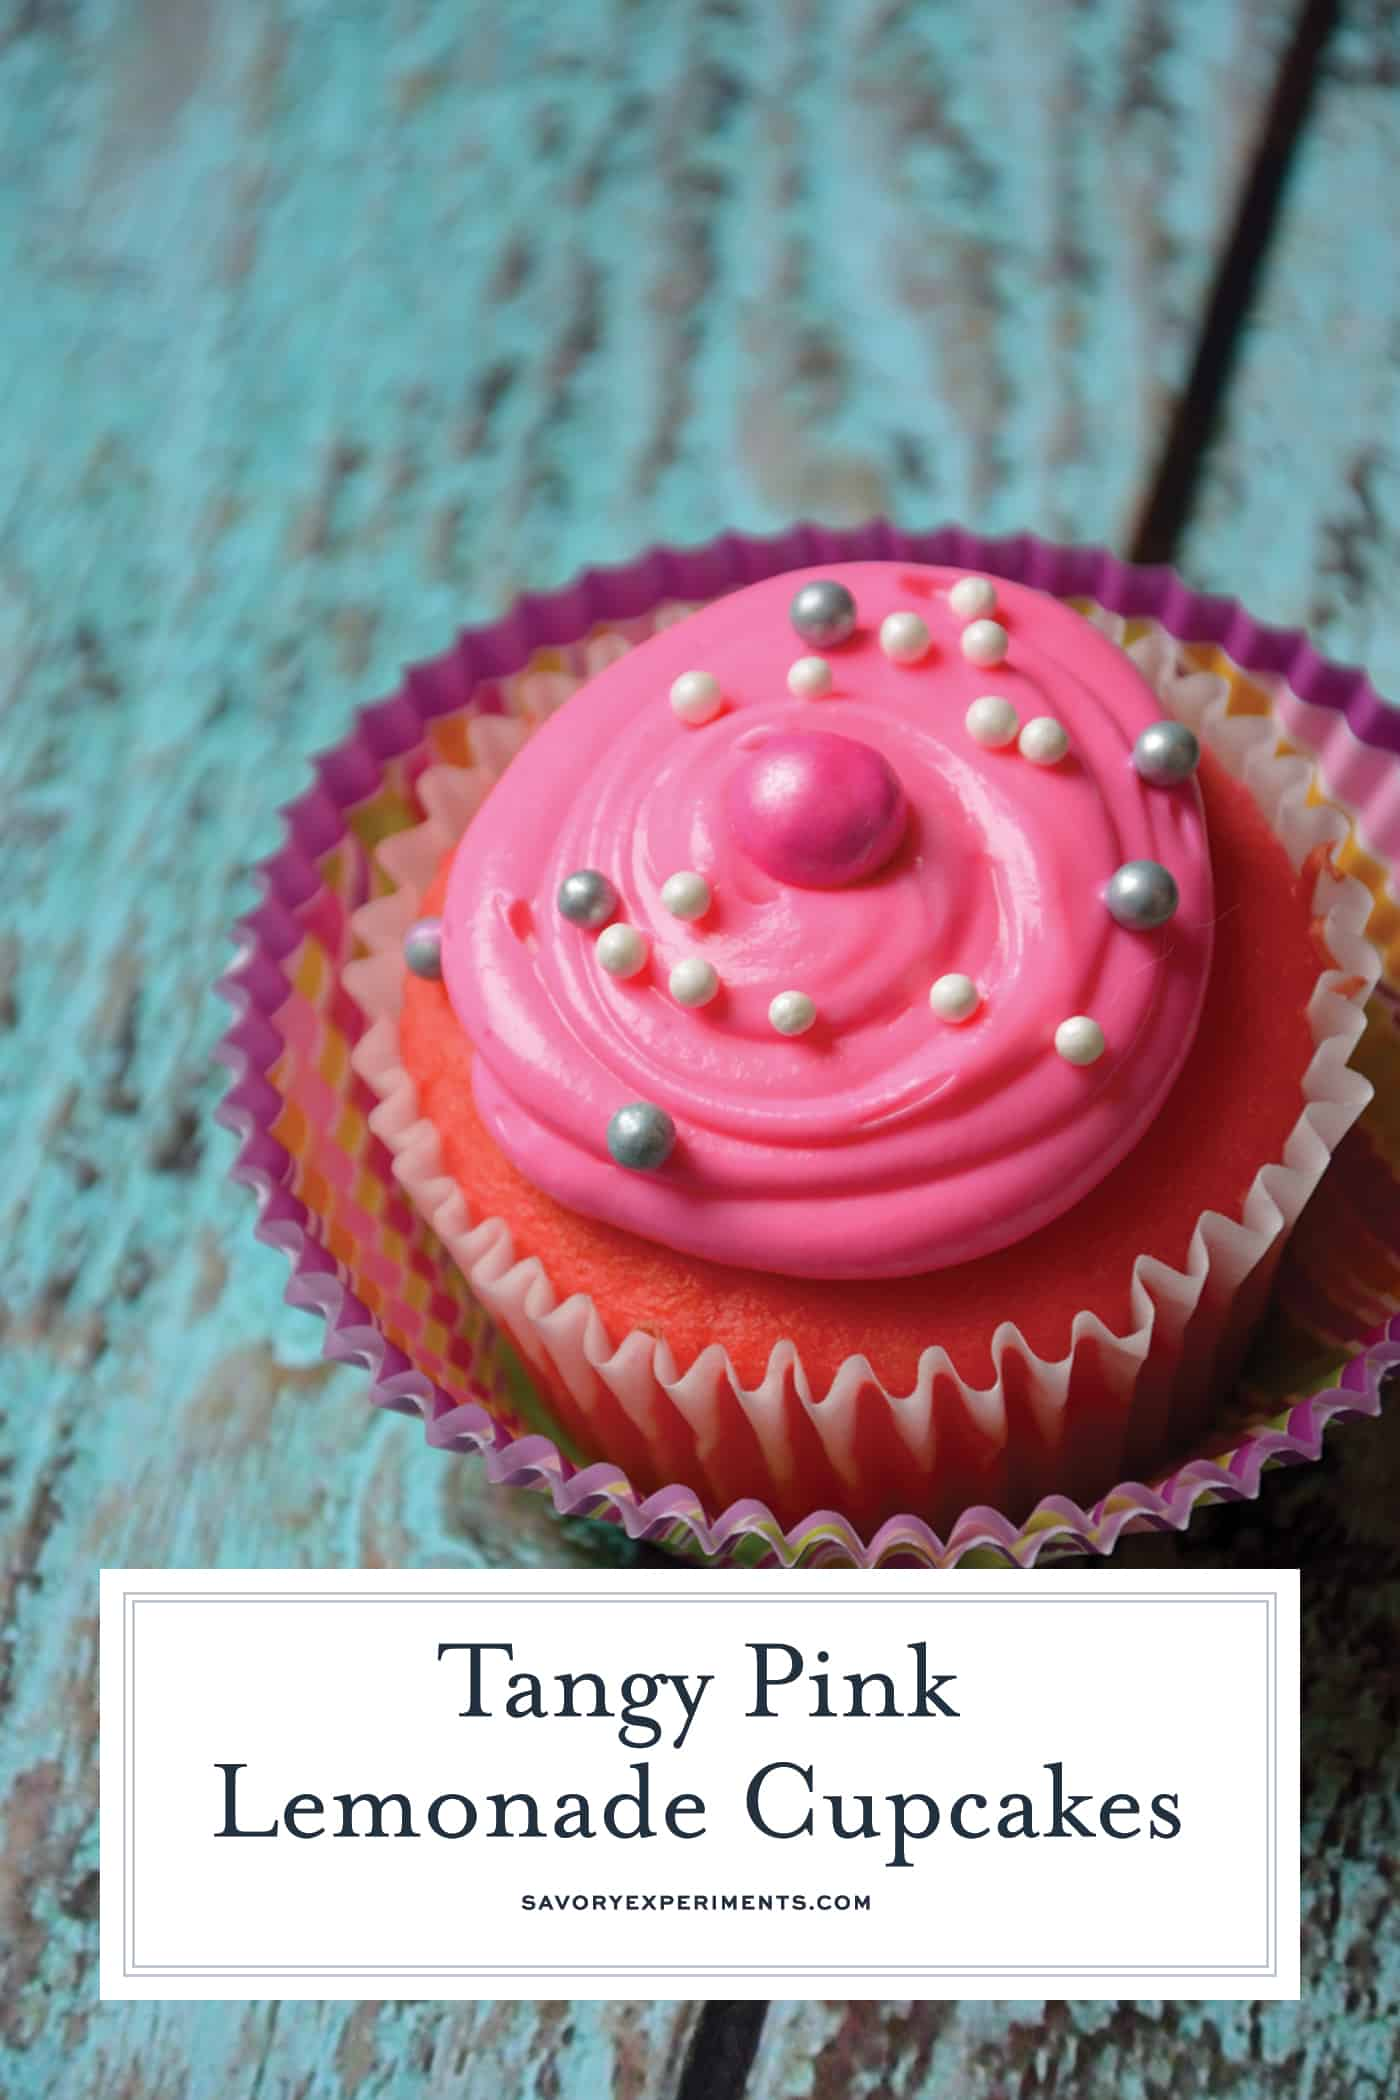 Pink Lemonade Cupcakes are an easy cupcake recipe using boxed cake mix with lemon flavoring and pretty pink food coloring. Perfect for any spring event! #easycupcakerecipe #pinklemonadecupcakes www.savoryexperiments.com